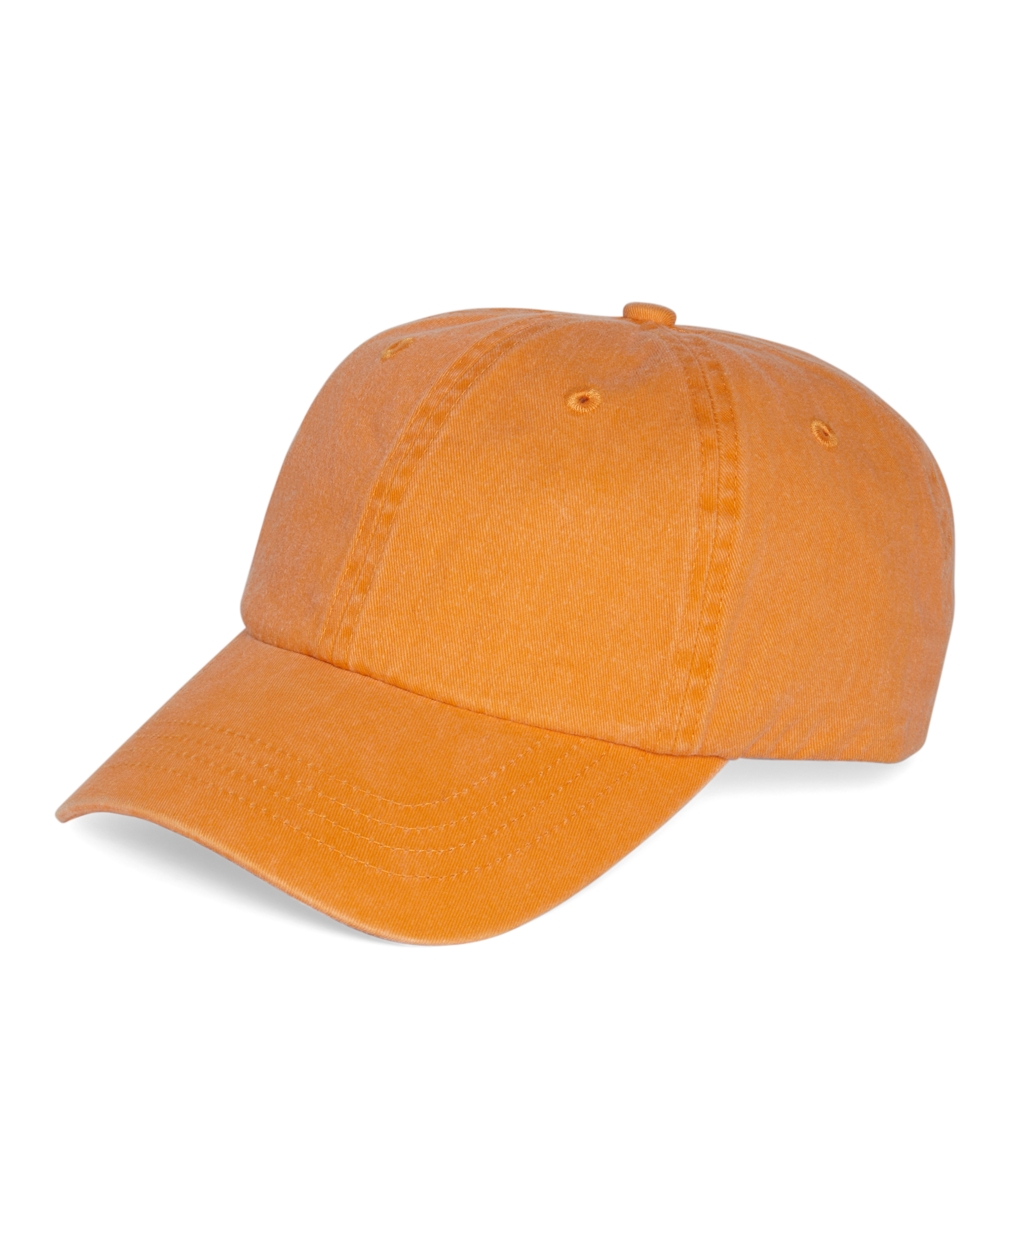 brothers faded cotton baseball cap in orange for